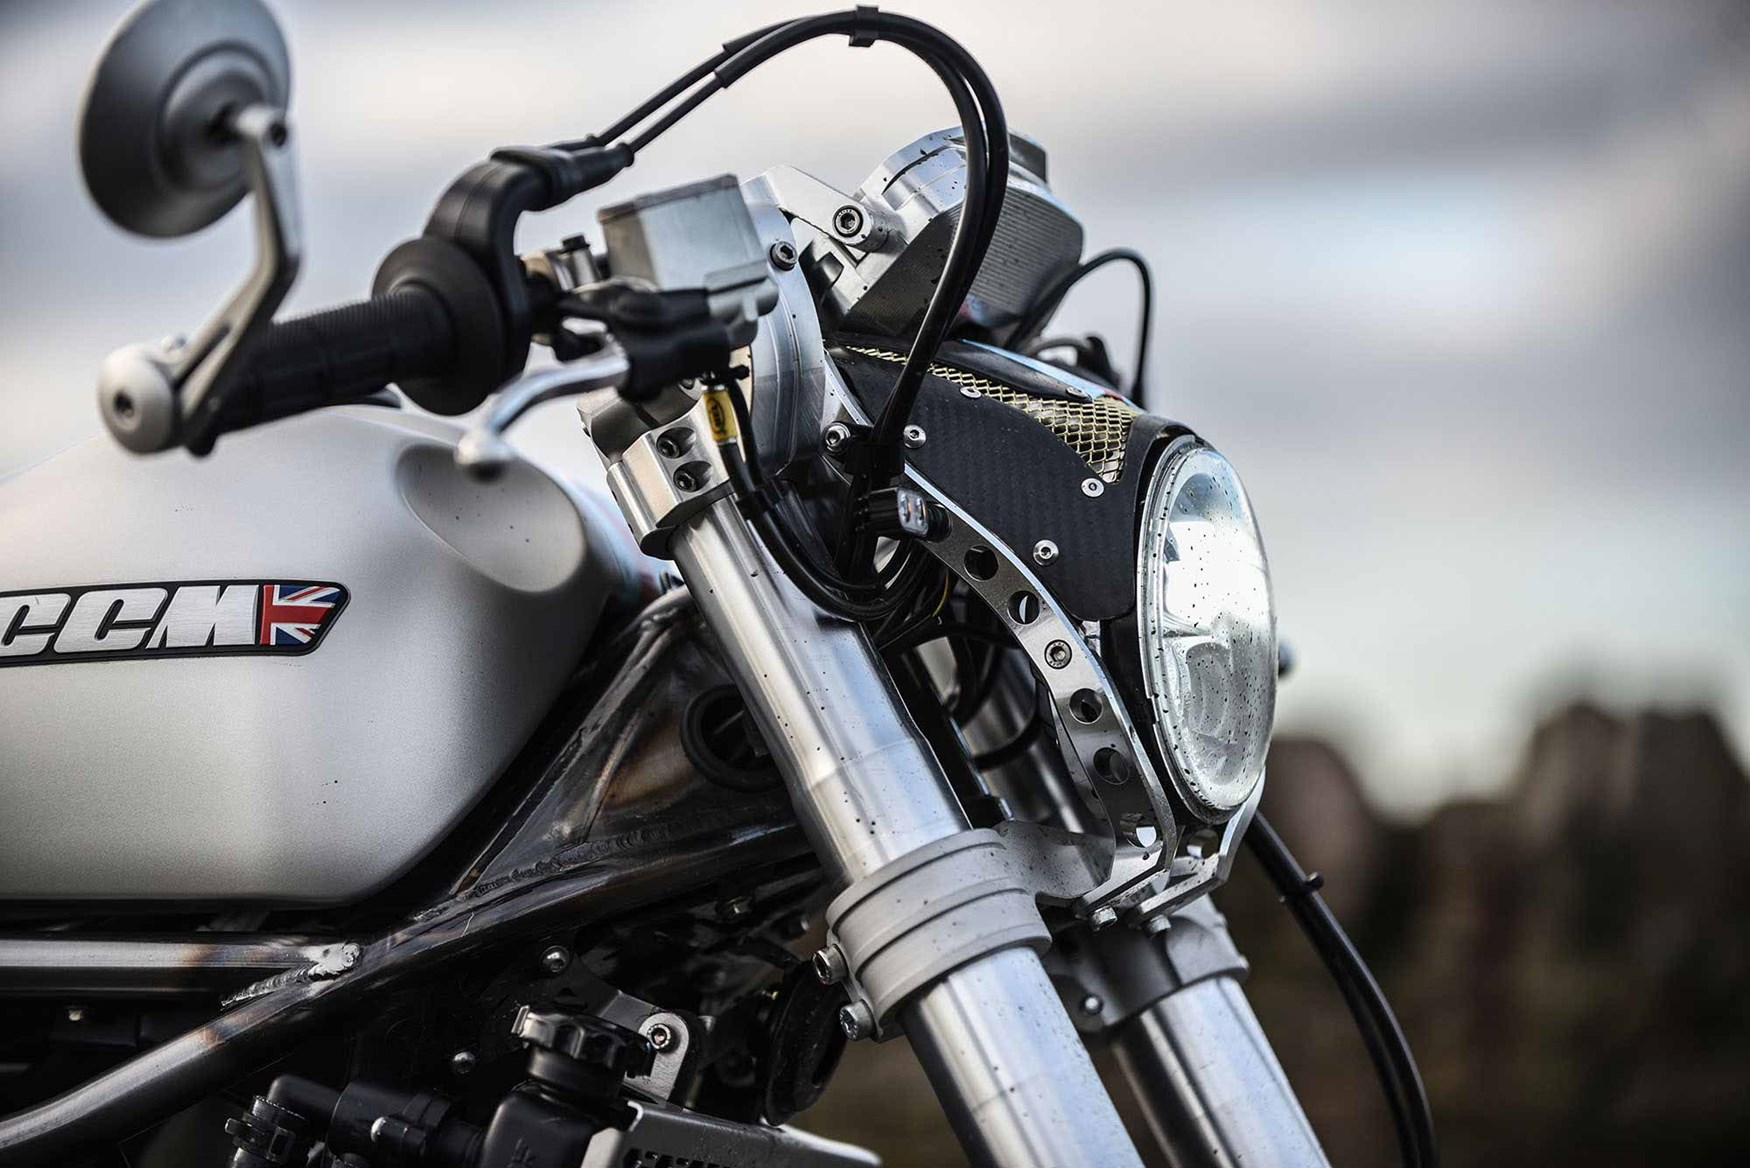 CCM SPITFIRE CAFE RACER (2019-on) Review